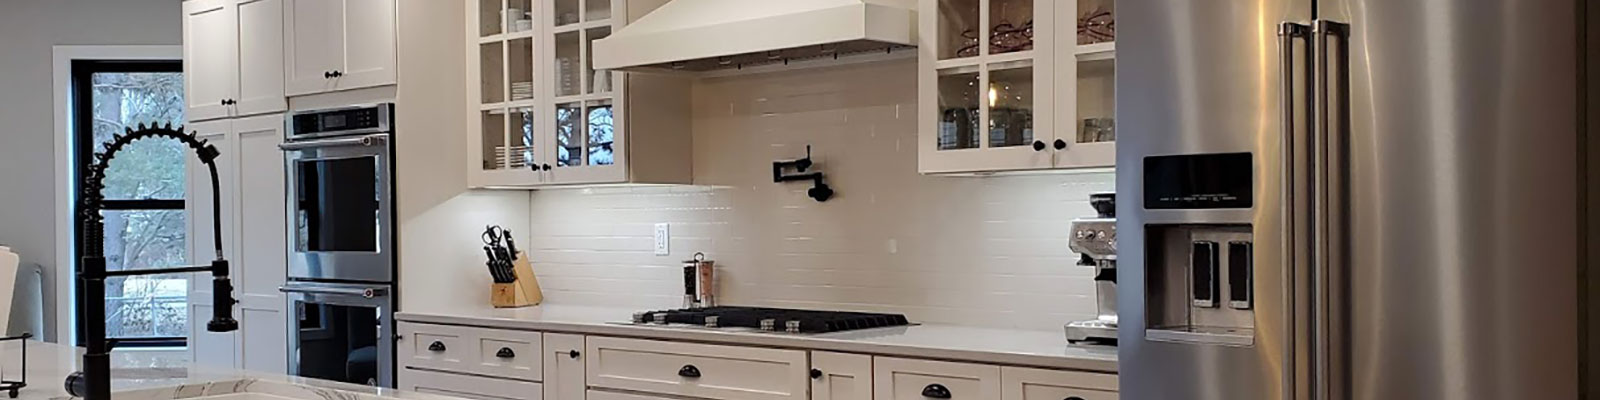 Kitchen and Bathroom Remodeling Contractor – 3 Day Kitchen ...